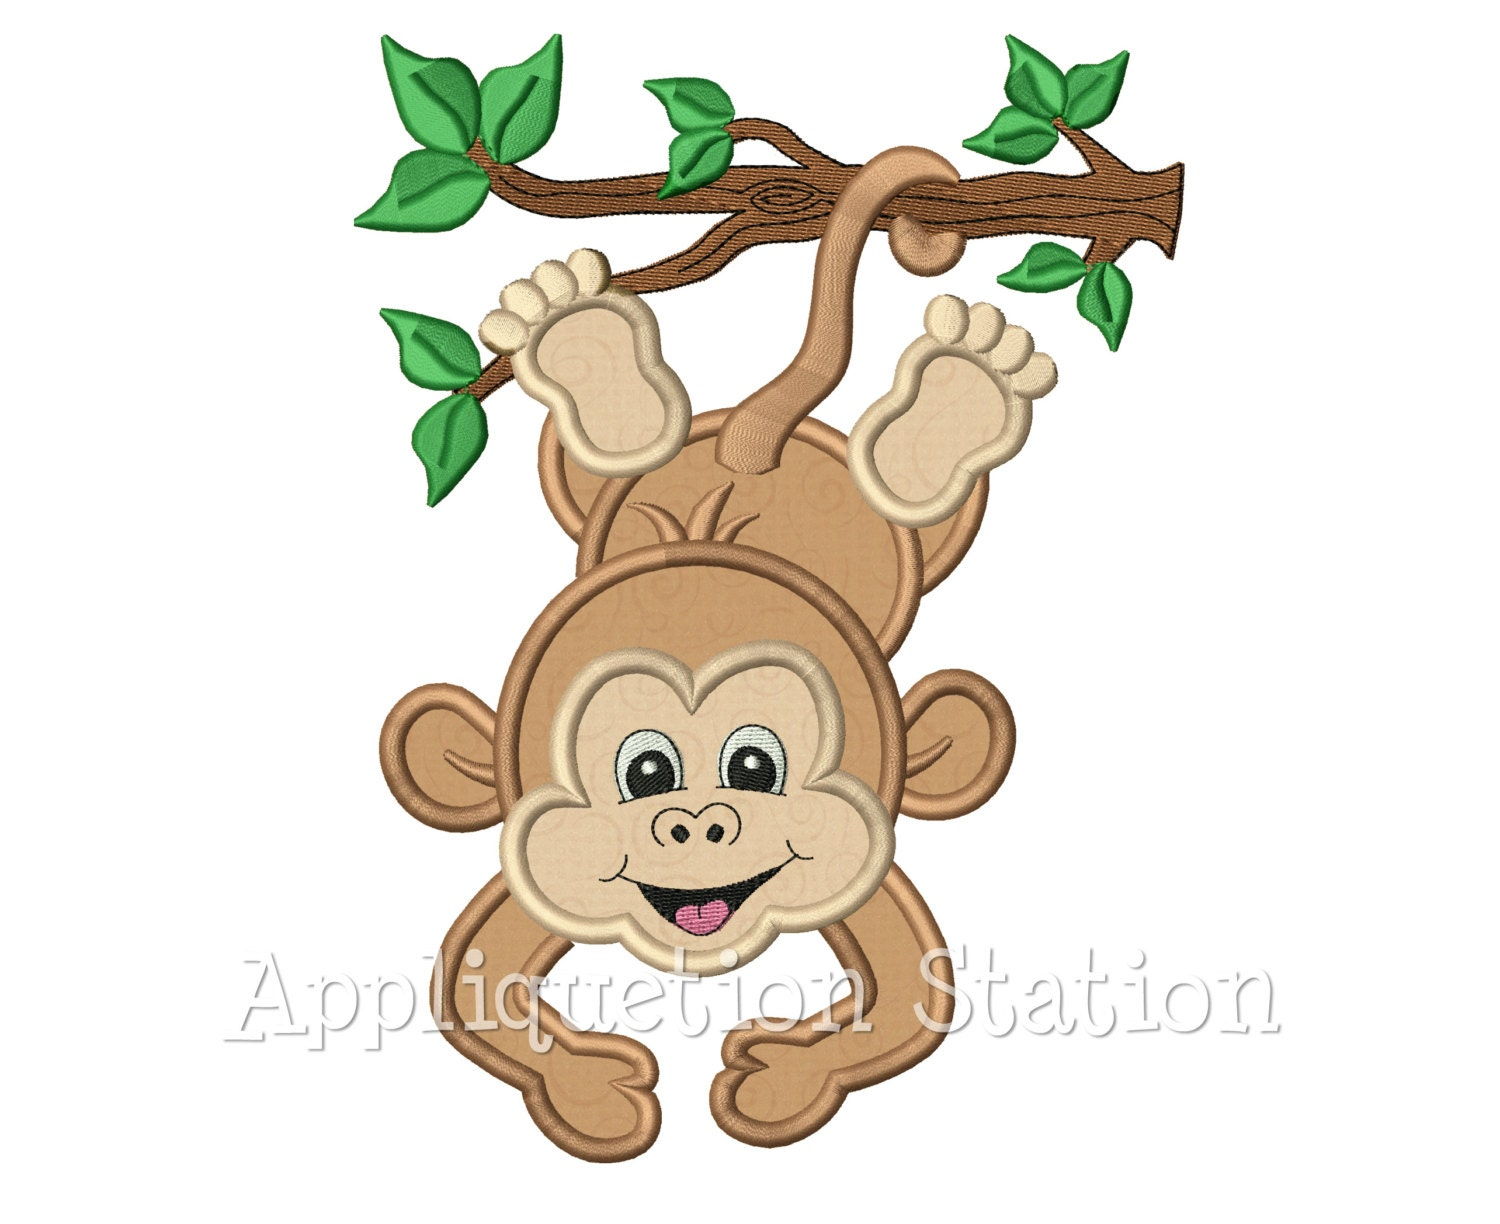 Zoo Baby Monkey Hanging Branch Boy Applique Machine Embroidery